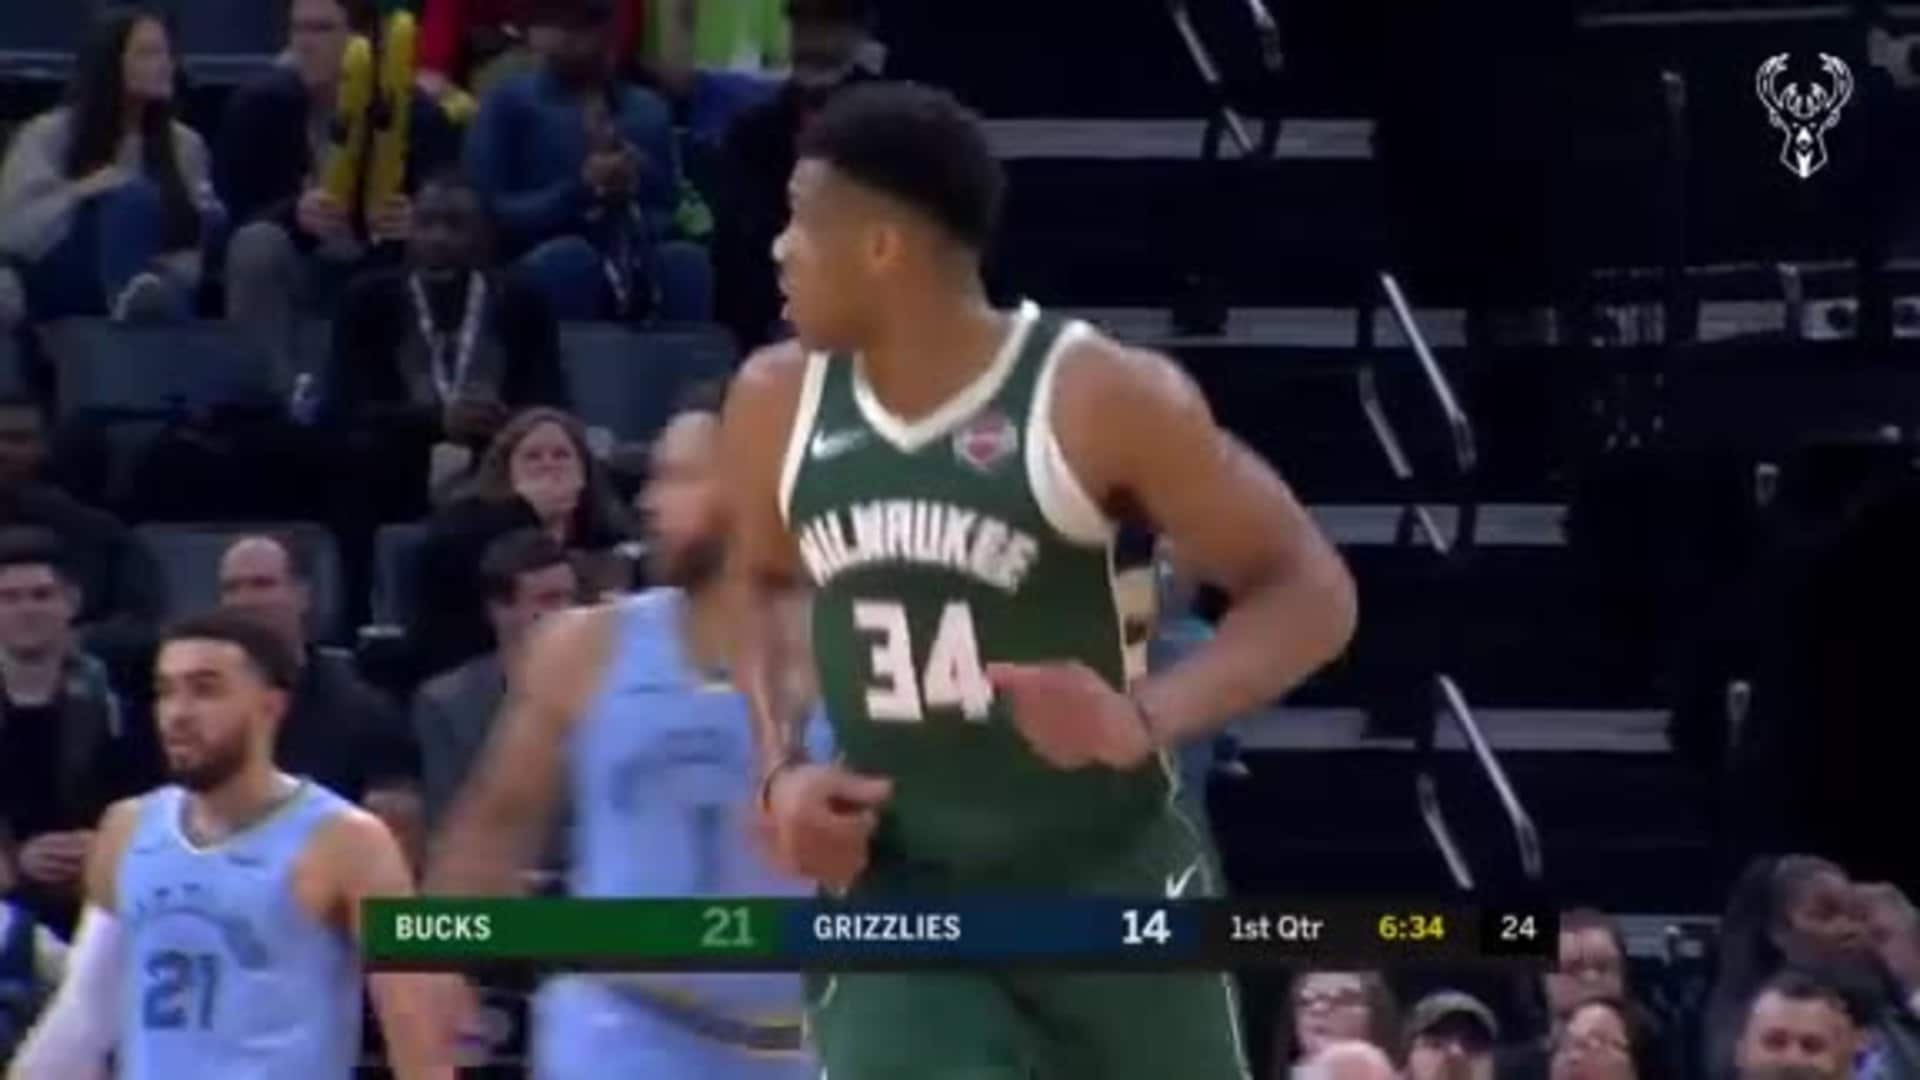 Game Highlights: Bucks 127 - Grizzlies 114 | 12.13.19